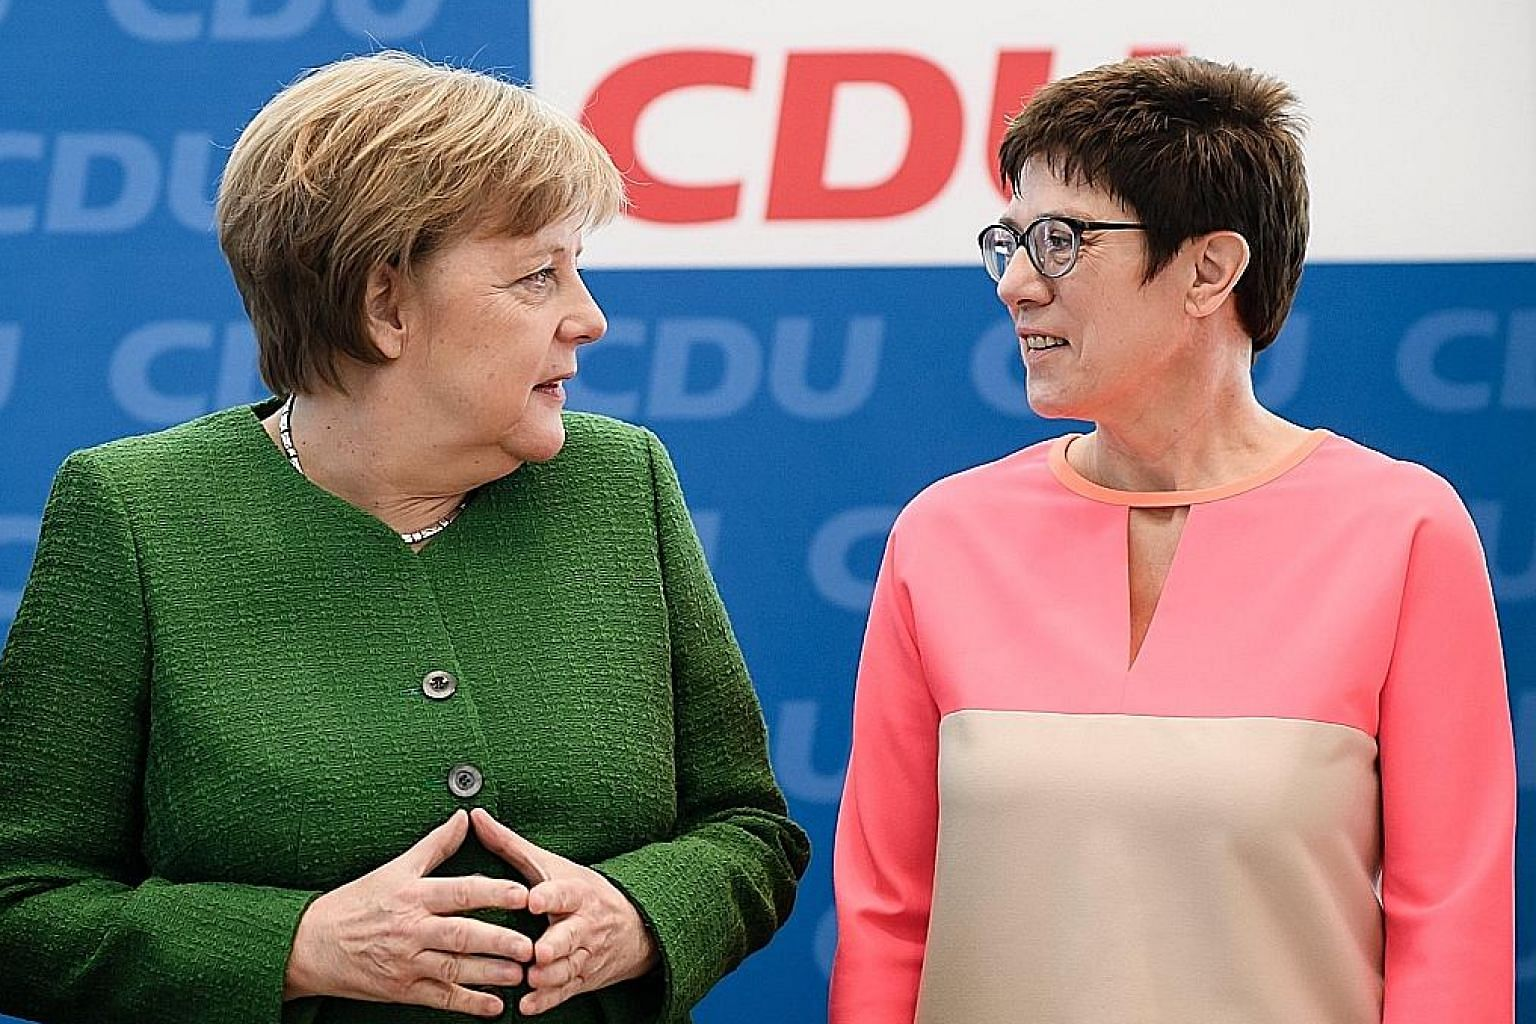 German Chancellor Angela Merkel with her close confidante Annegret Kramp-Karrenbauer at the CDU's headquarters in Berlin yesterday. The latter is strongly tipped to succeed Dr Merkel eventually.